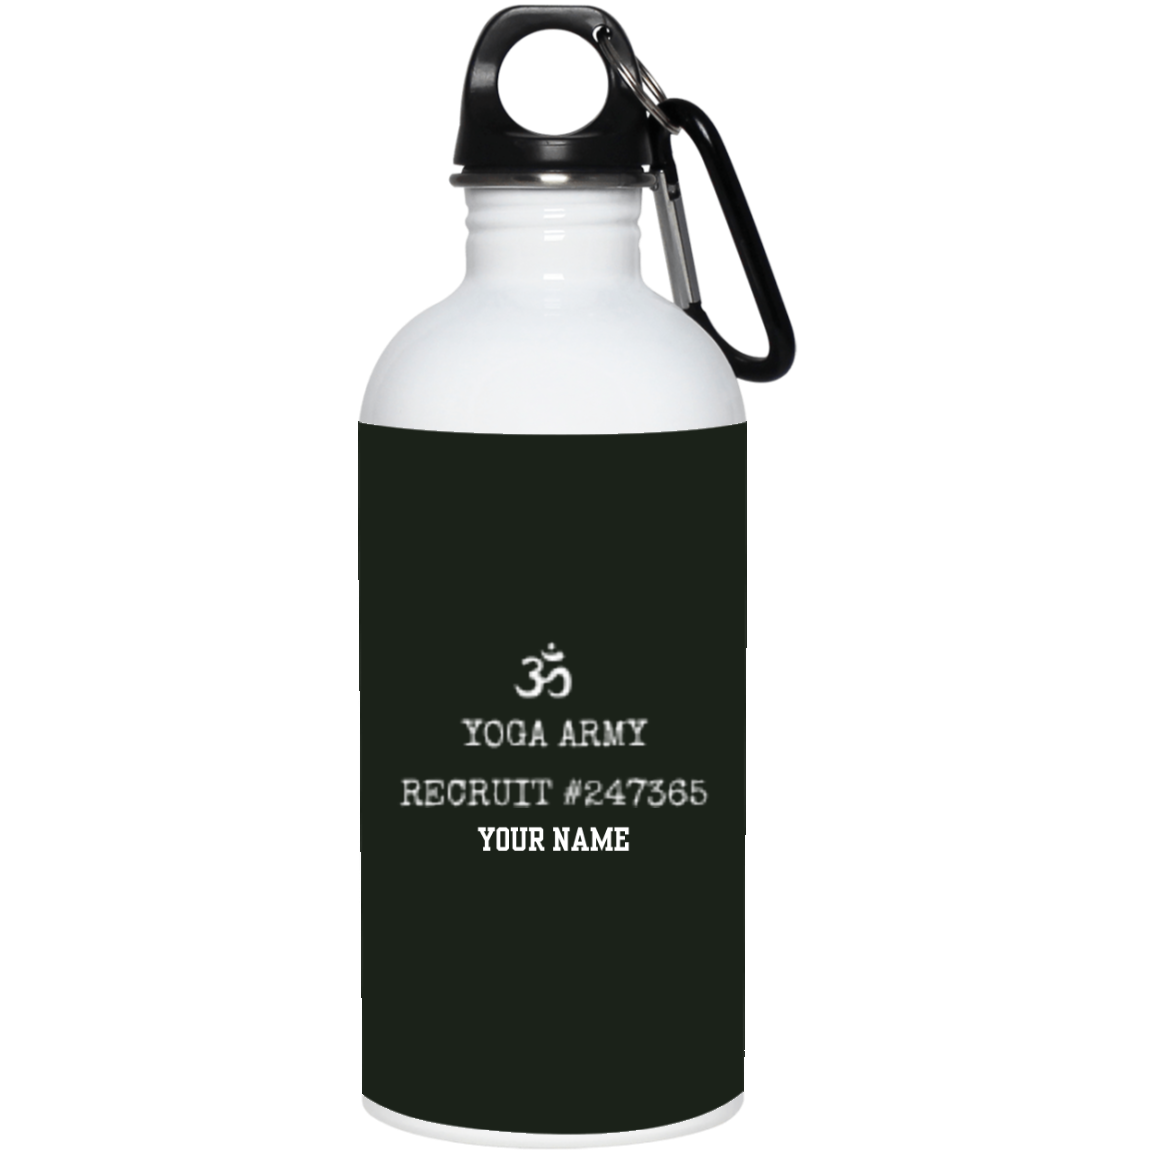 YOGA ARMY 20 oz. Stainless Steel Water Bottle